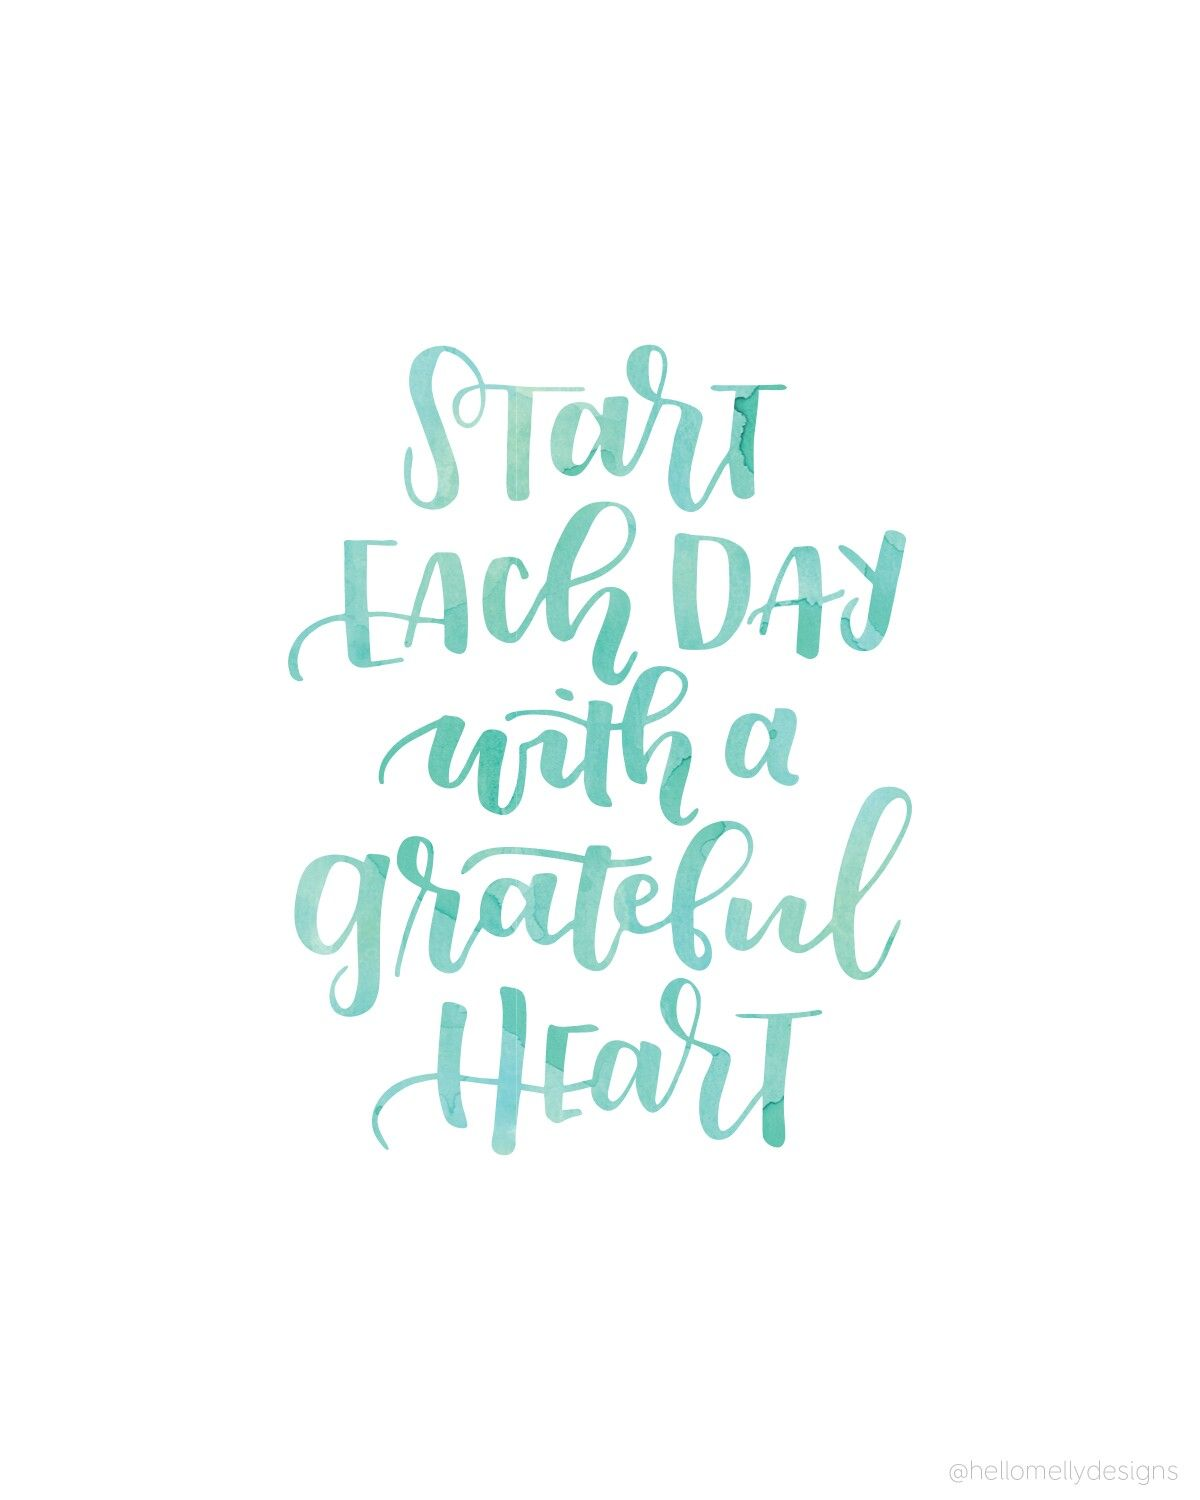 ... Each Day With A Grateful Heart. Cool Inspirational, Motivational And  Positive Quote About Living Each Day. Teal Typography On A Simple White  Background.